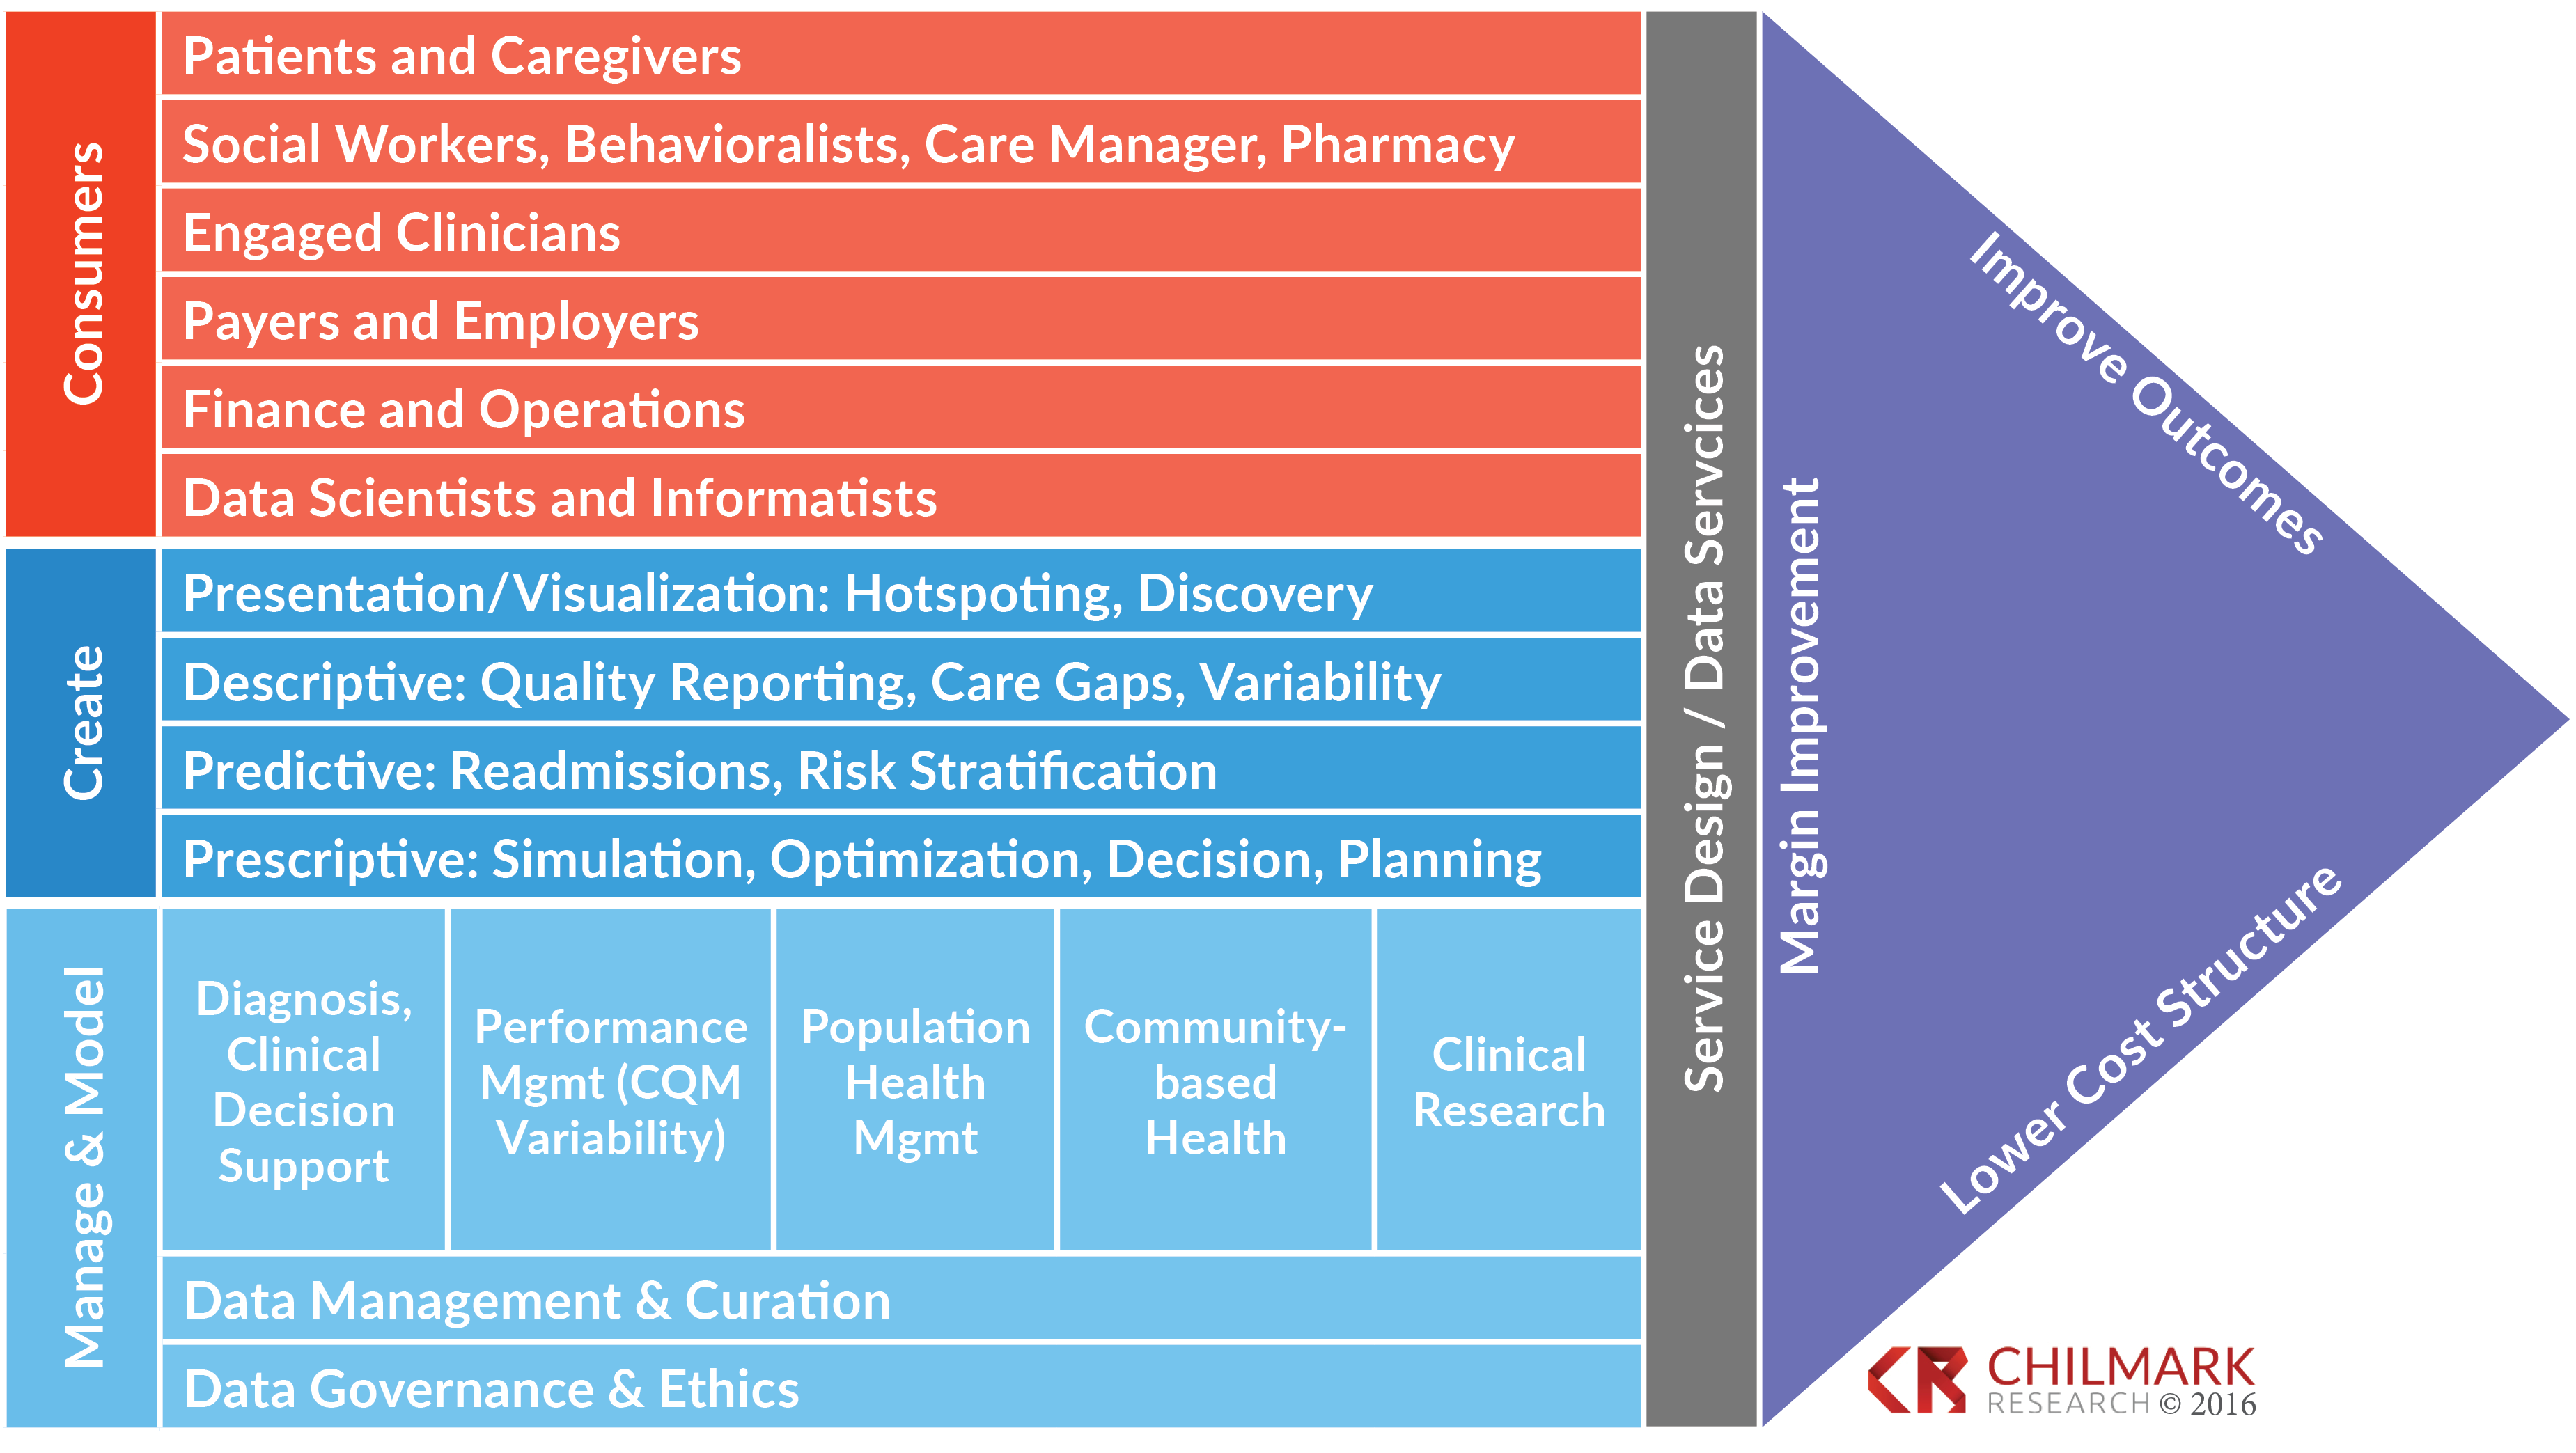 Needed: A Value Chain Model for Data Analytics